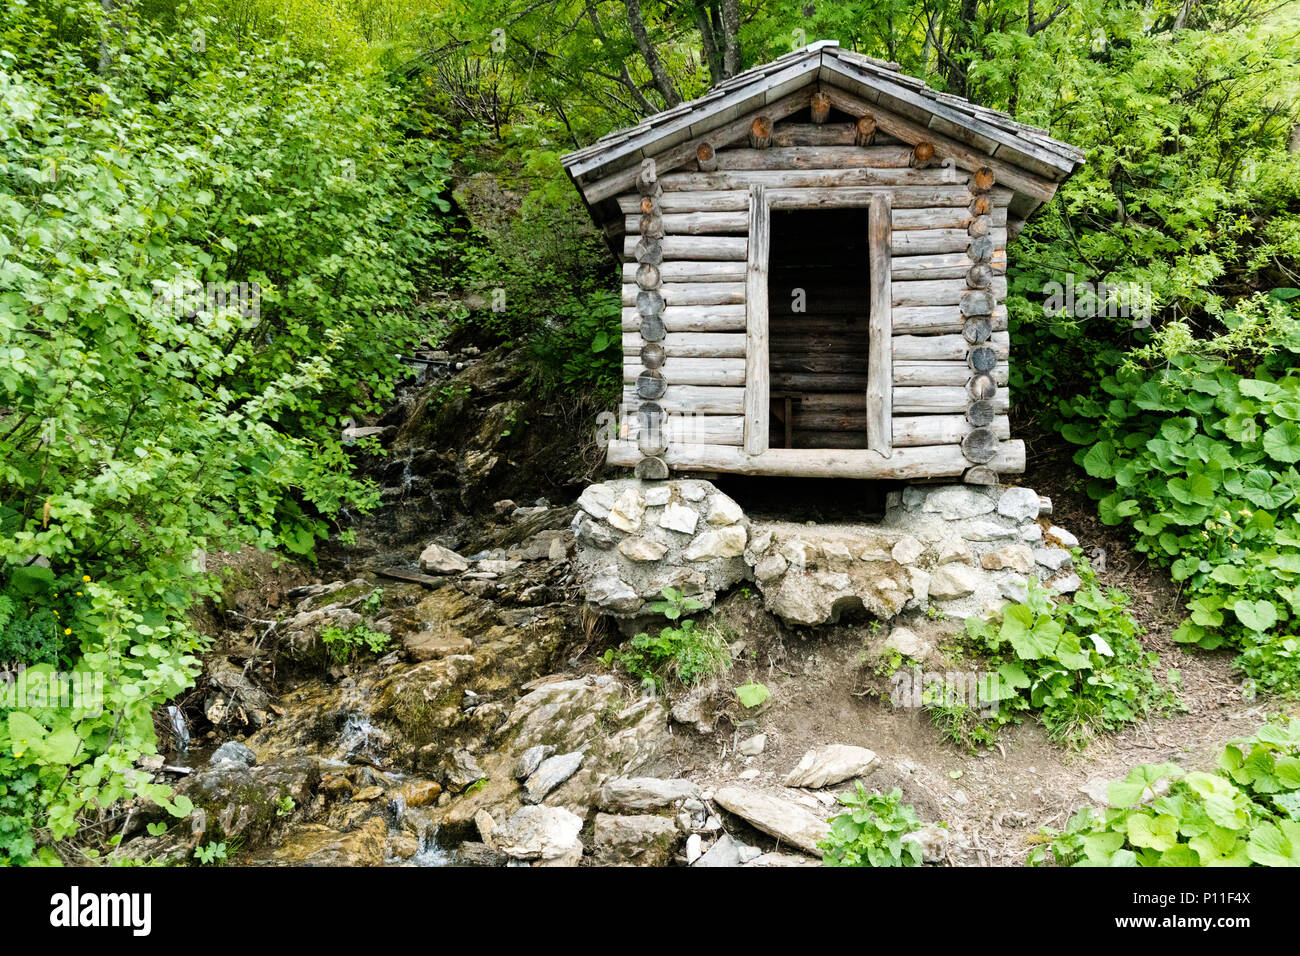 tiny wooden mountain cabin in dense lush green summer forest with a small creek beside it - Stock Image